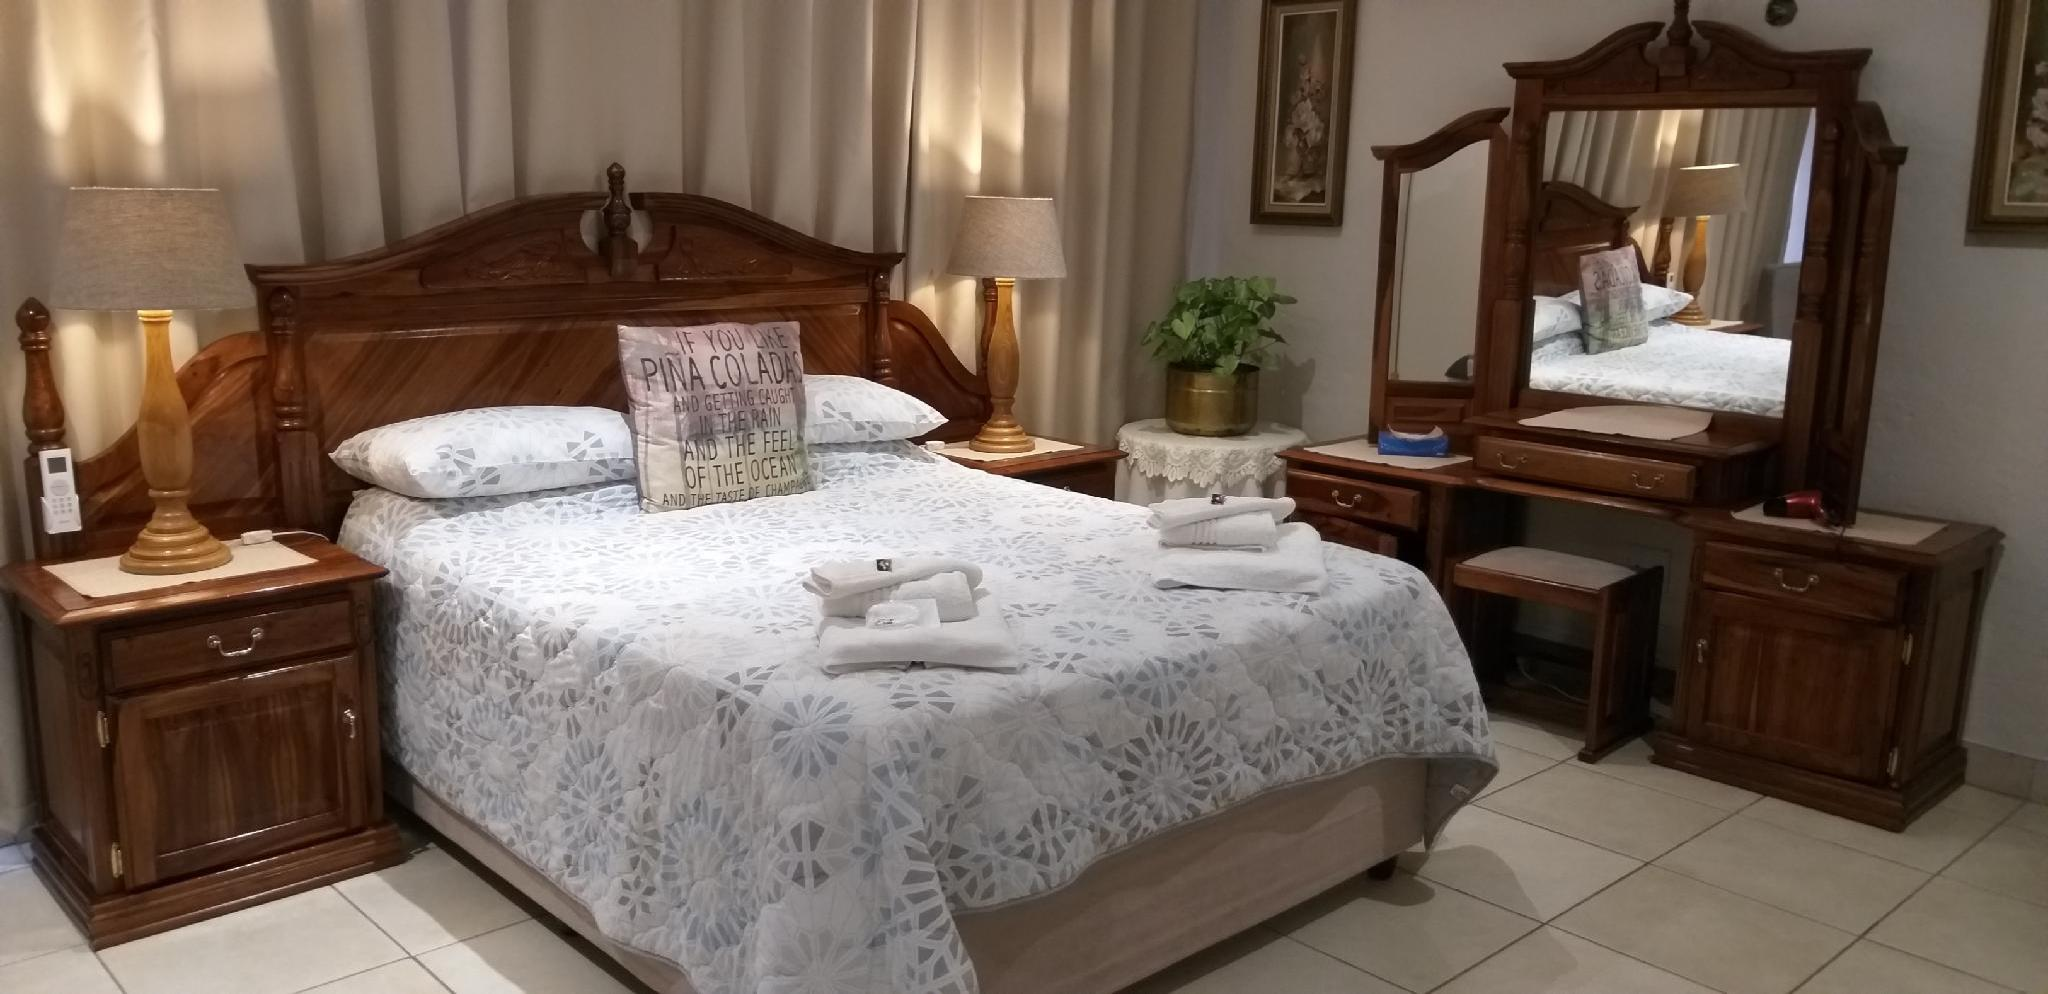 Suite per Famiglie (4 Persone) (Family Suite 4 person)